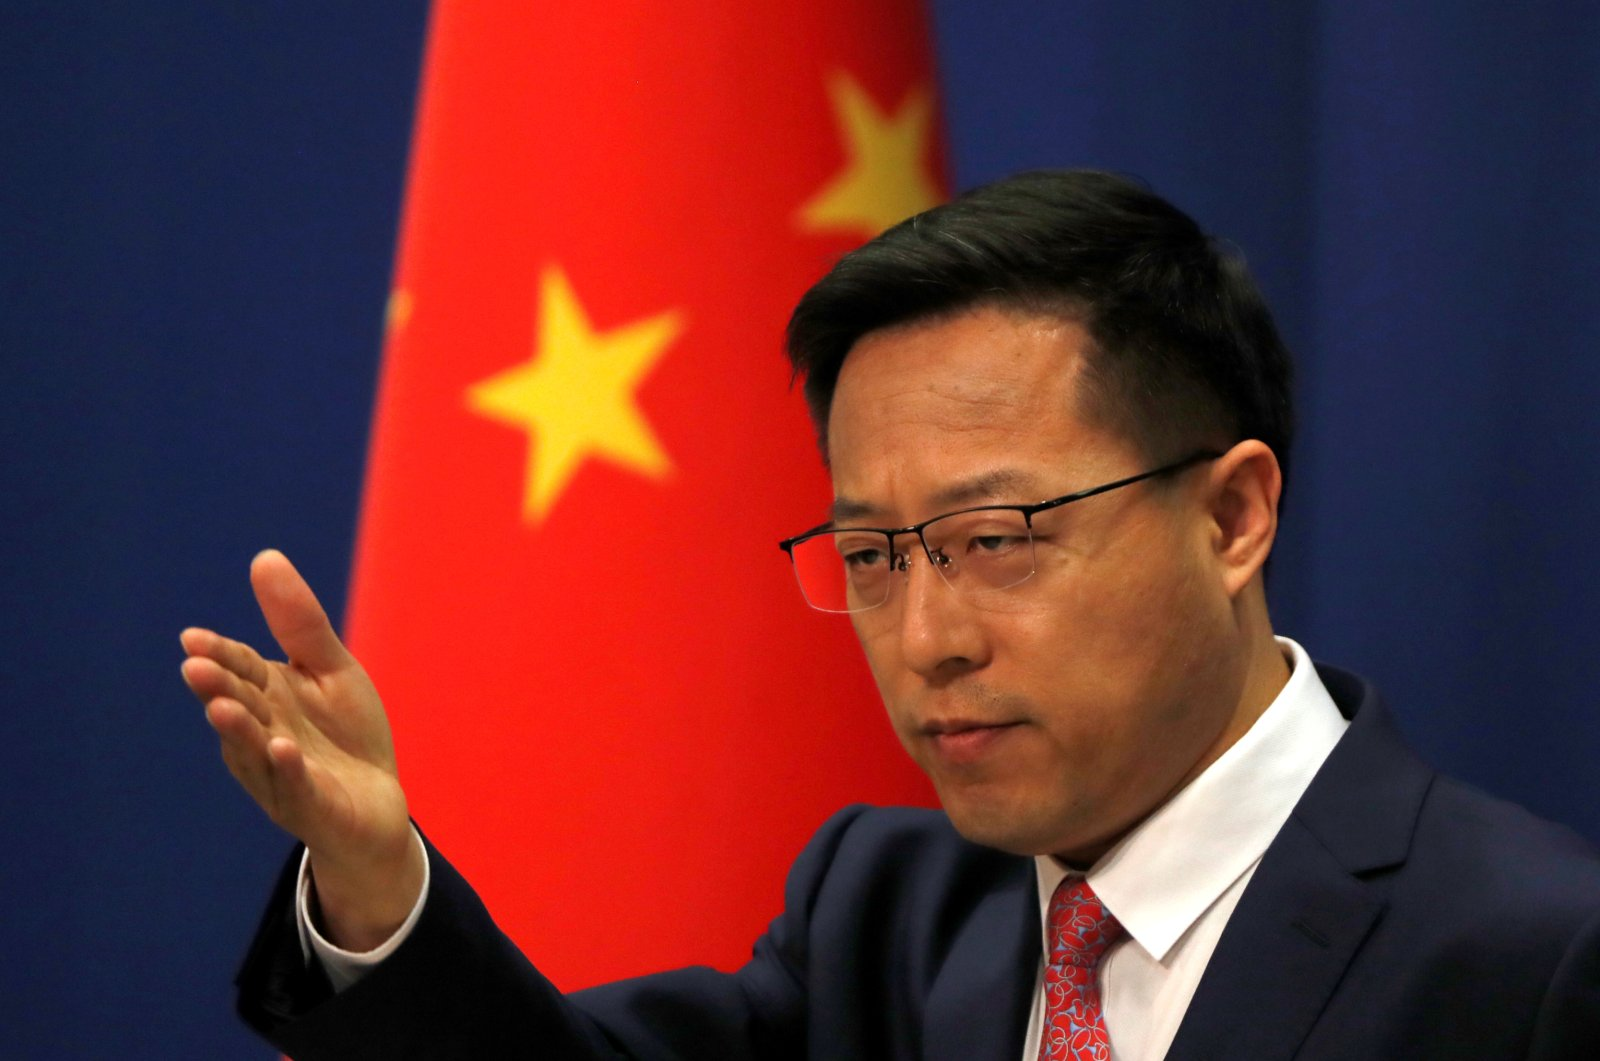 Chinese Foreign Ministry spokesman Zhao Lijian attends a news conference in Beijing, April 8, 2020. (Reuters Photo)